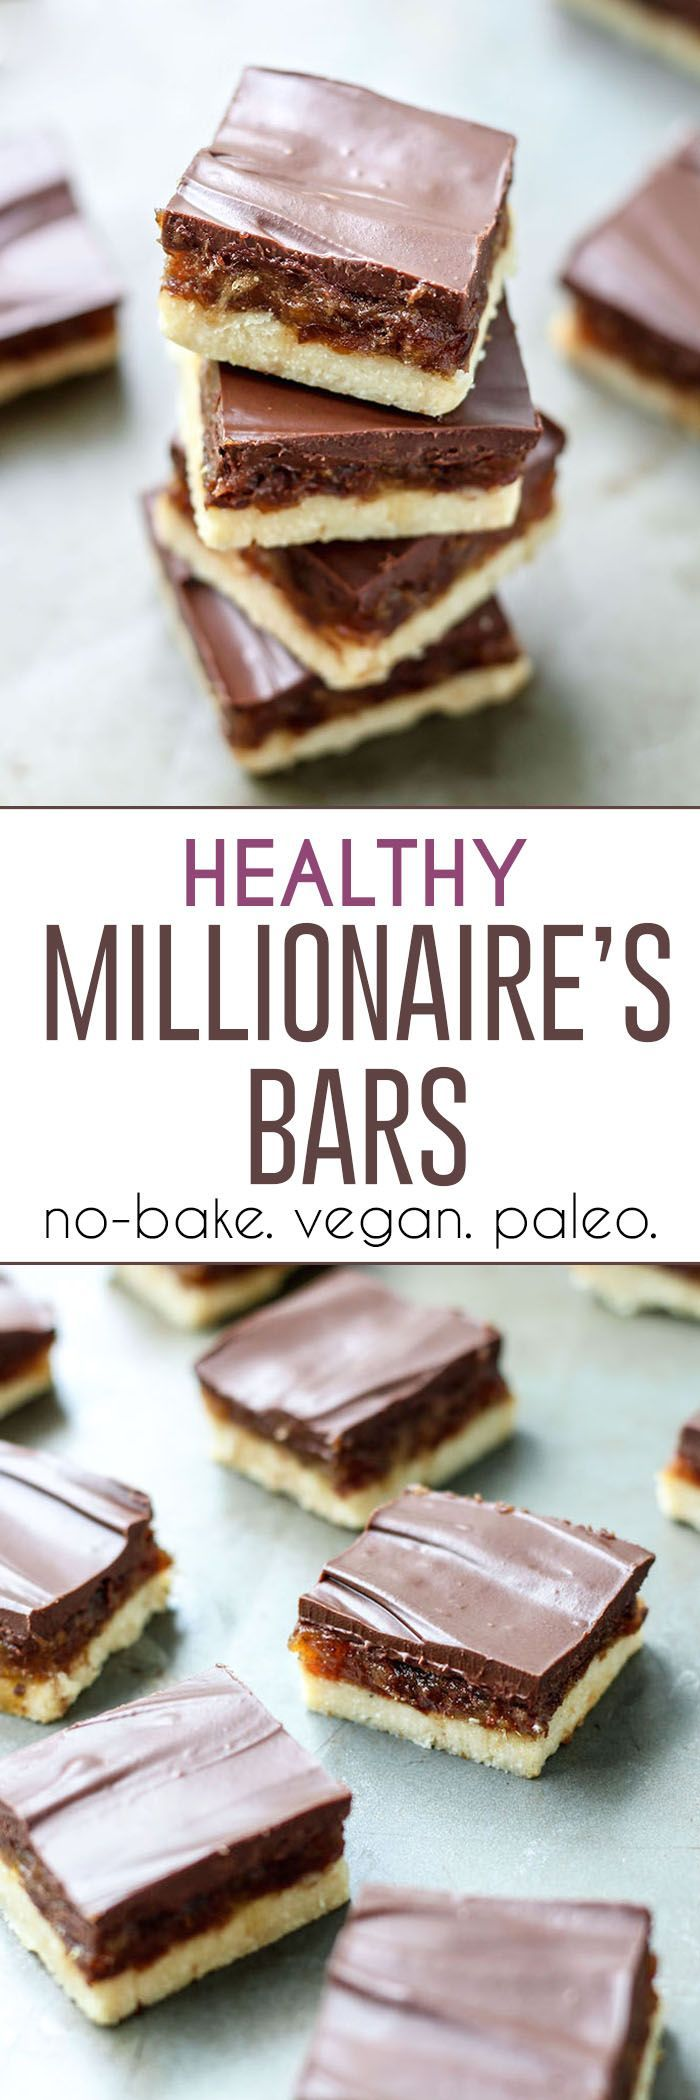 "Healthy, no-bake Millionaires Bars! Made vegan and paleo-friendly with a coconut flour base, date ""caramel"" for the middle, and melted chocolate for the top."